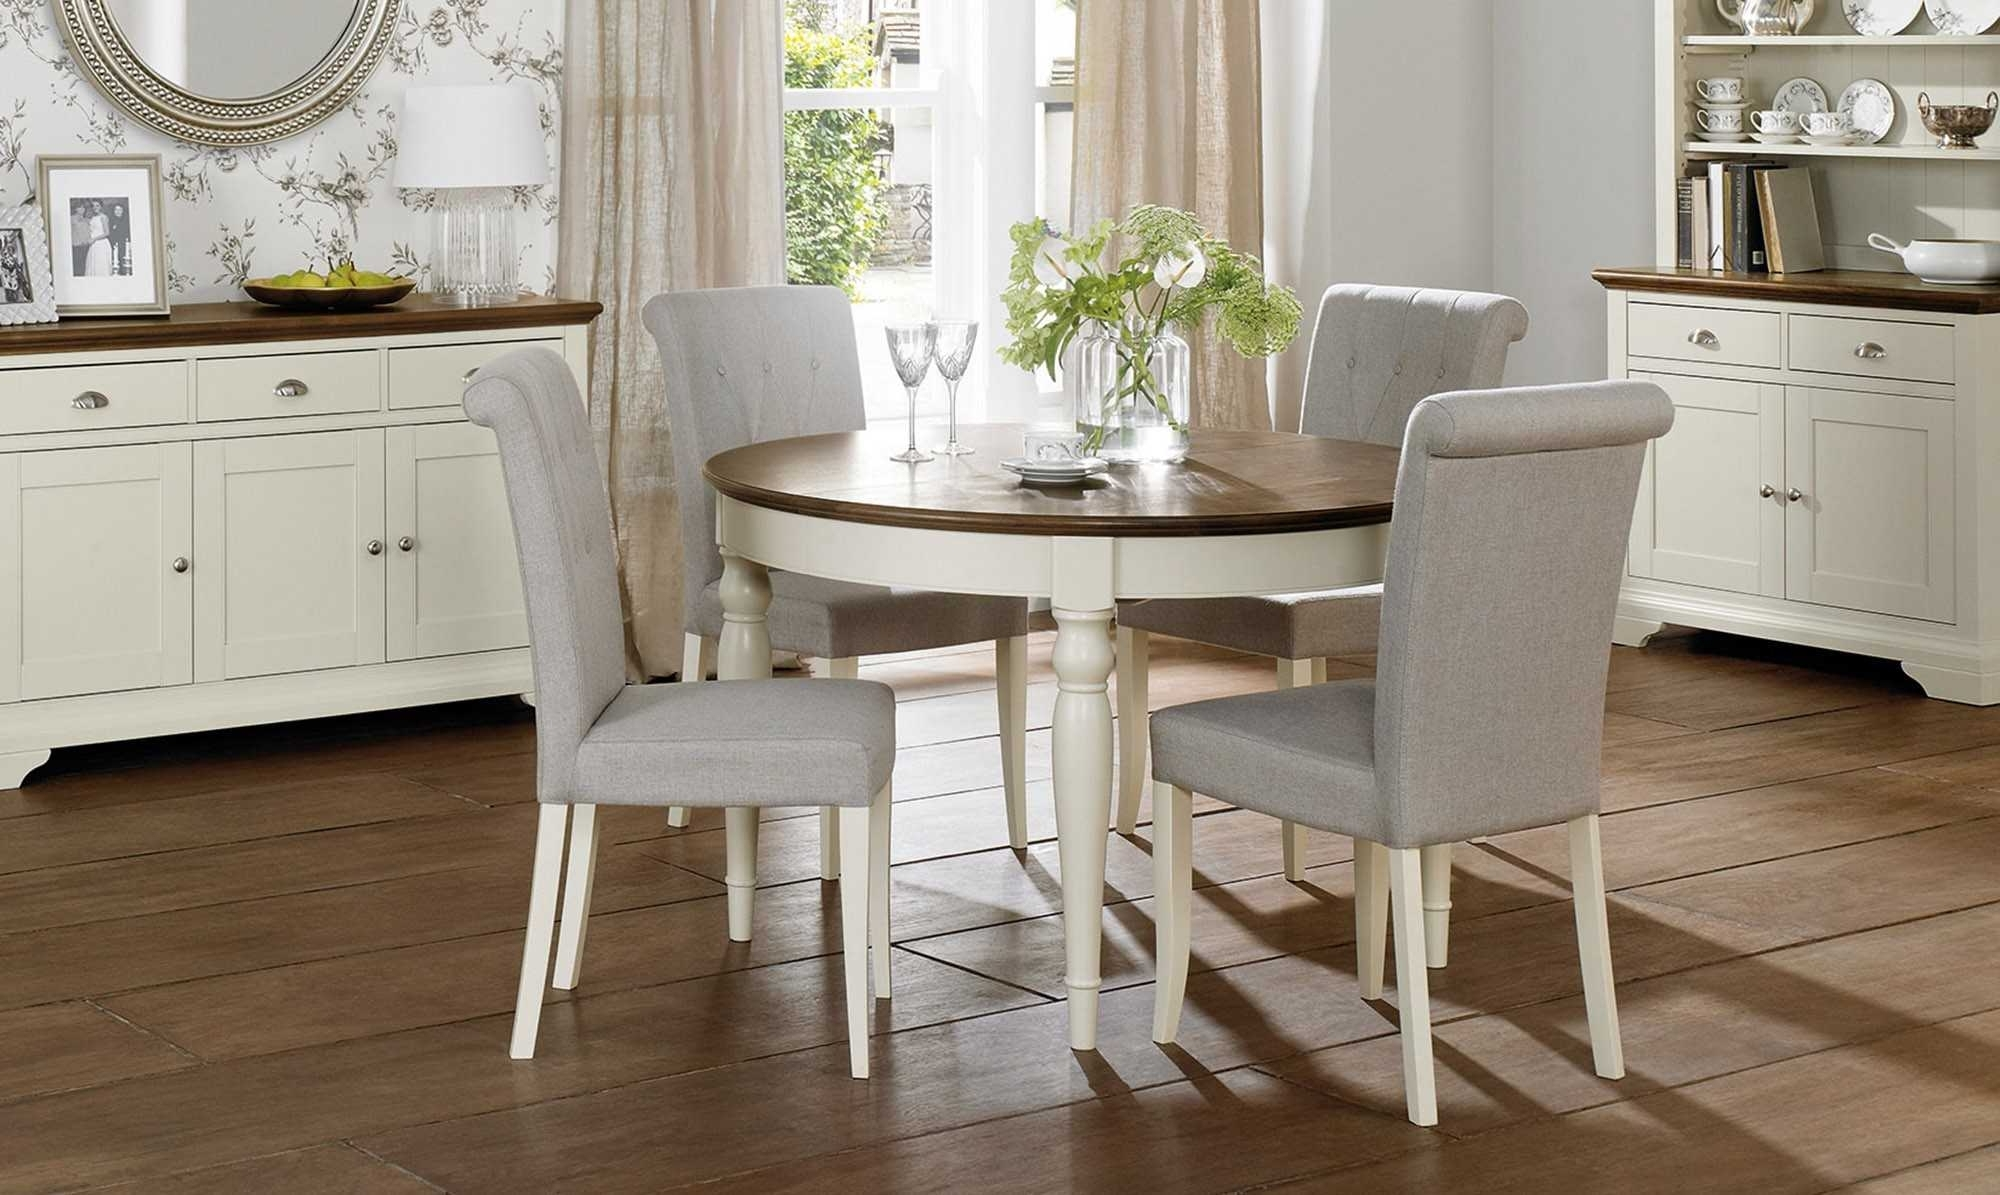 Most Current Round Extending Dining Table Sets – Castrophotos With Regard To Extending Dining Tables And Chairs (View 21 of 25)